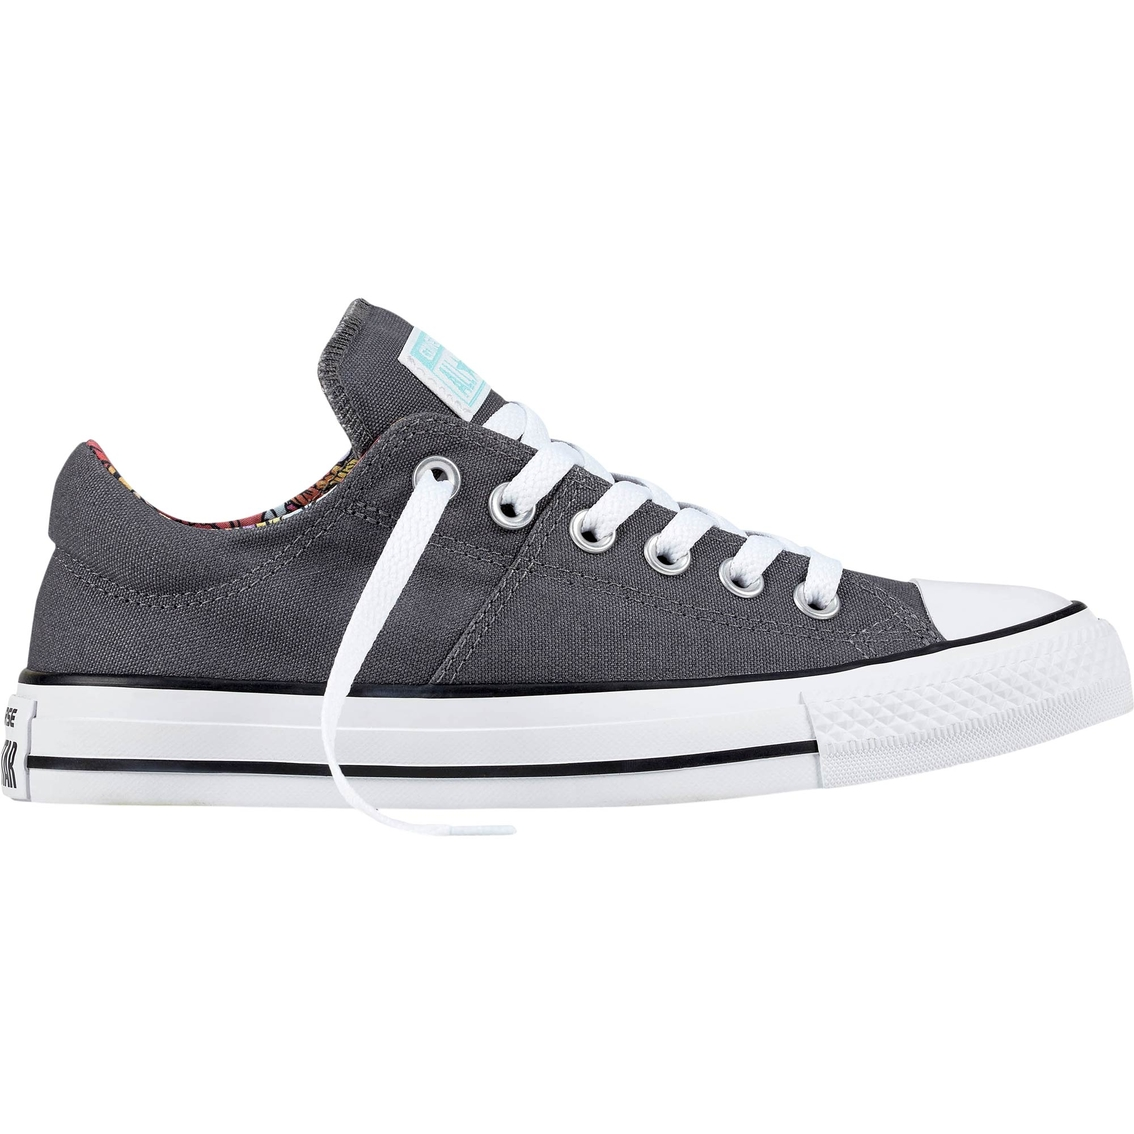 9e27846f7d Converse Chuck Taylor All Star Women's Madison Ox Sneakers ...